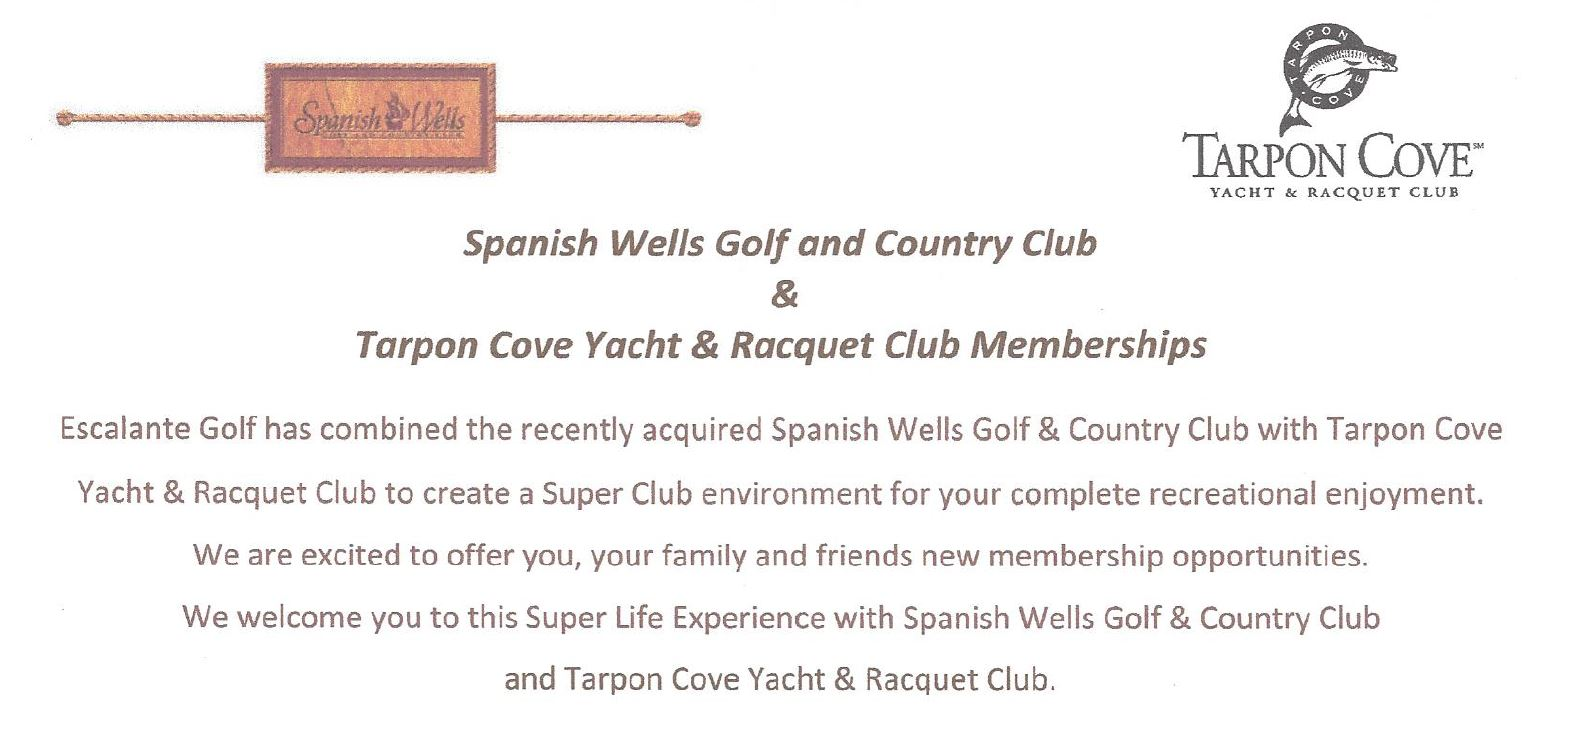 Club information for Spanish Wells in Naples, Florida.